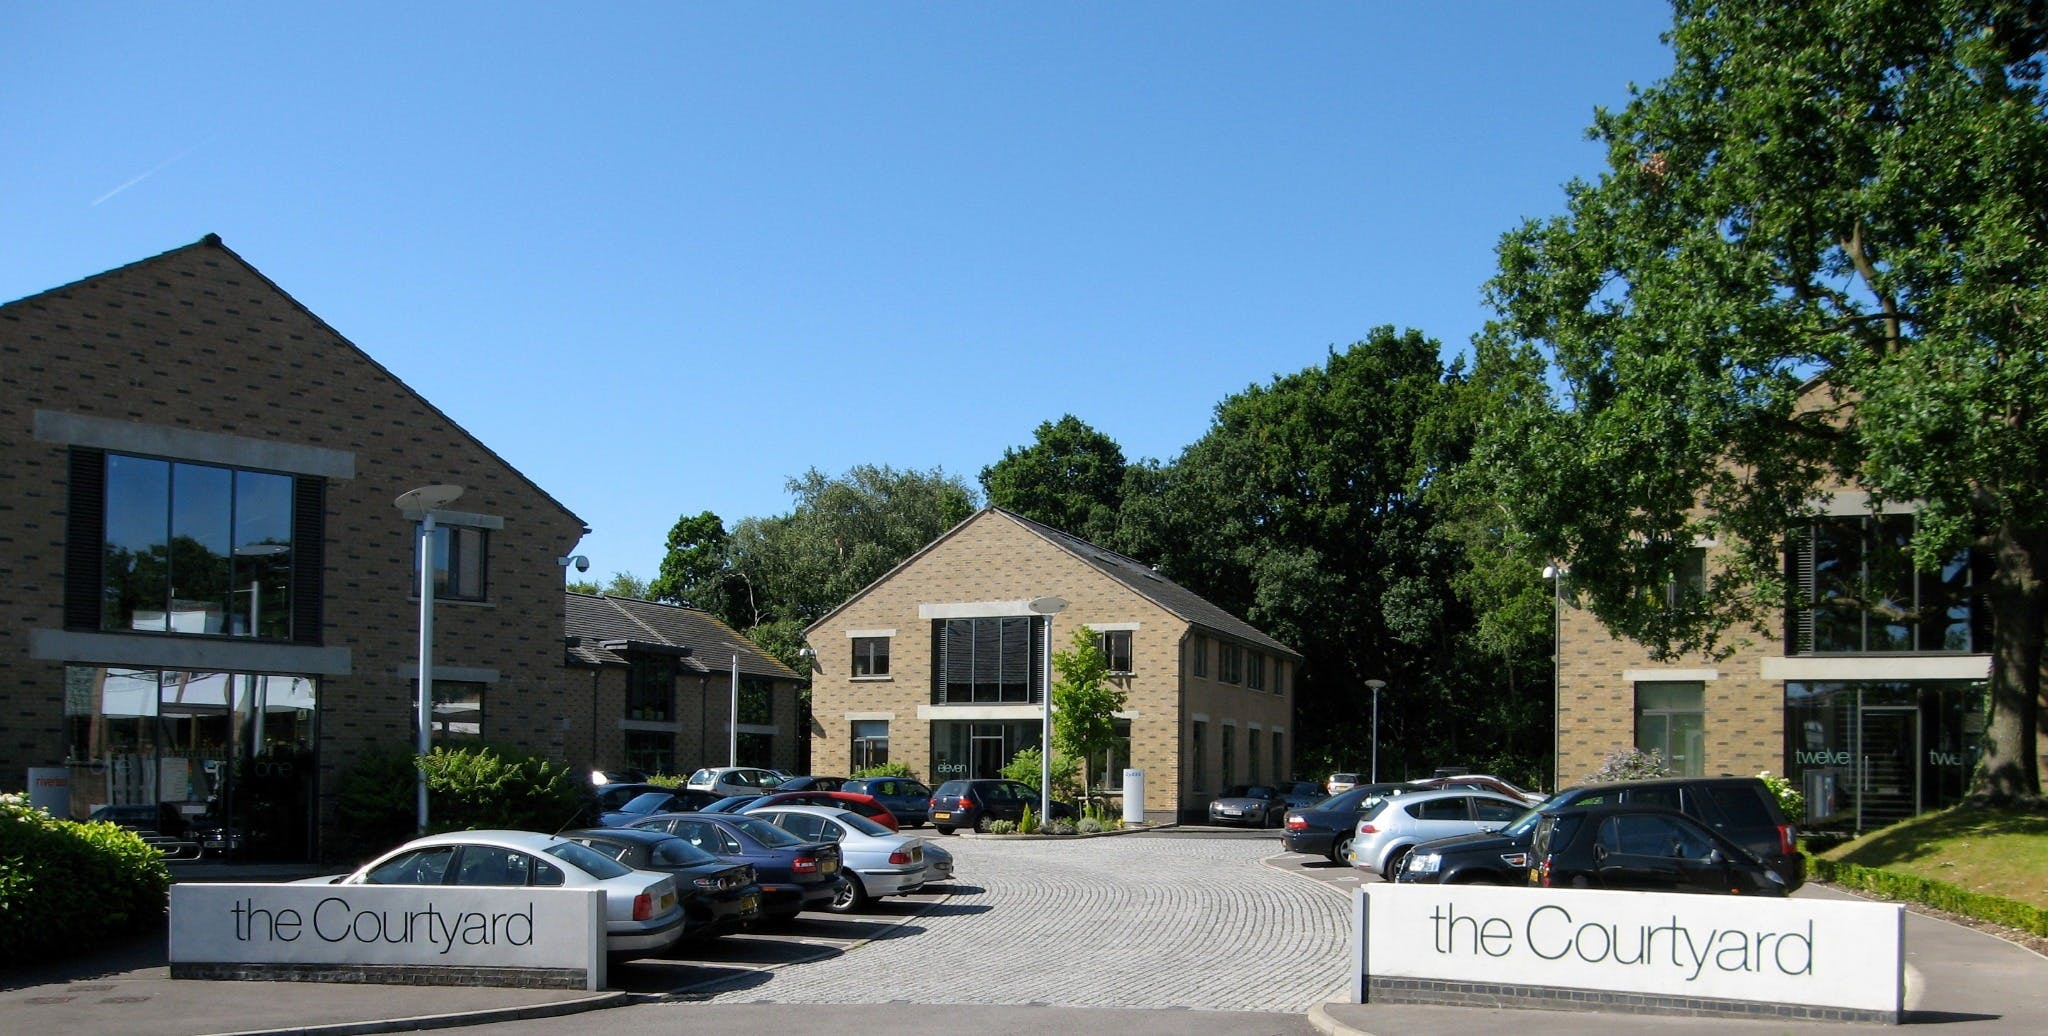 Units 3 & 4, The Courtyard, Bracknell, Offices To Let - Units 3 & 4 The Courtyard, Eastern Road, Bracknell, Berkshire RG12